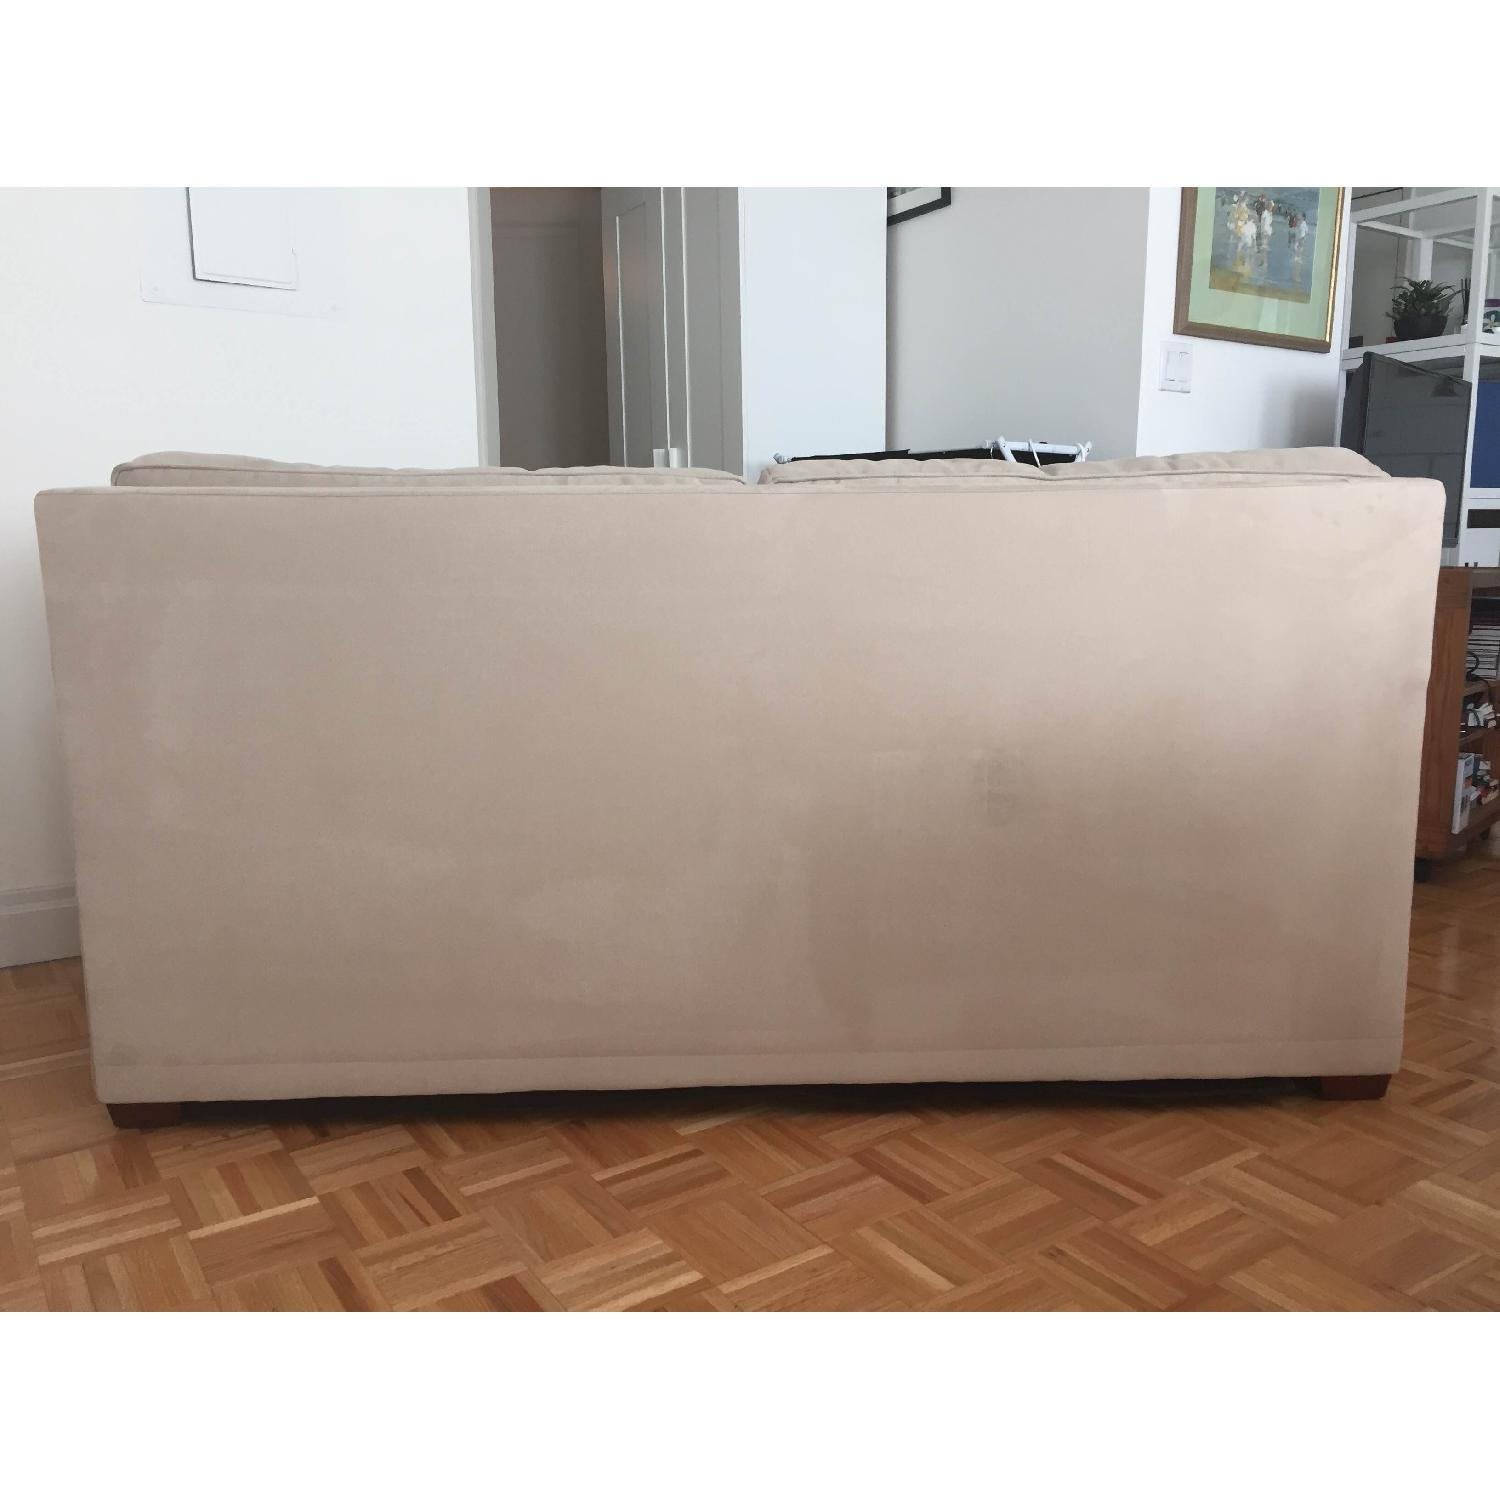 Crate & Barrel Pull Out Couch - image-1